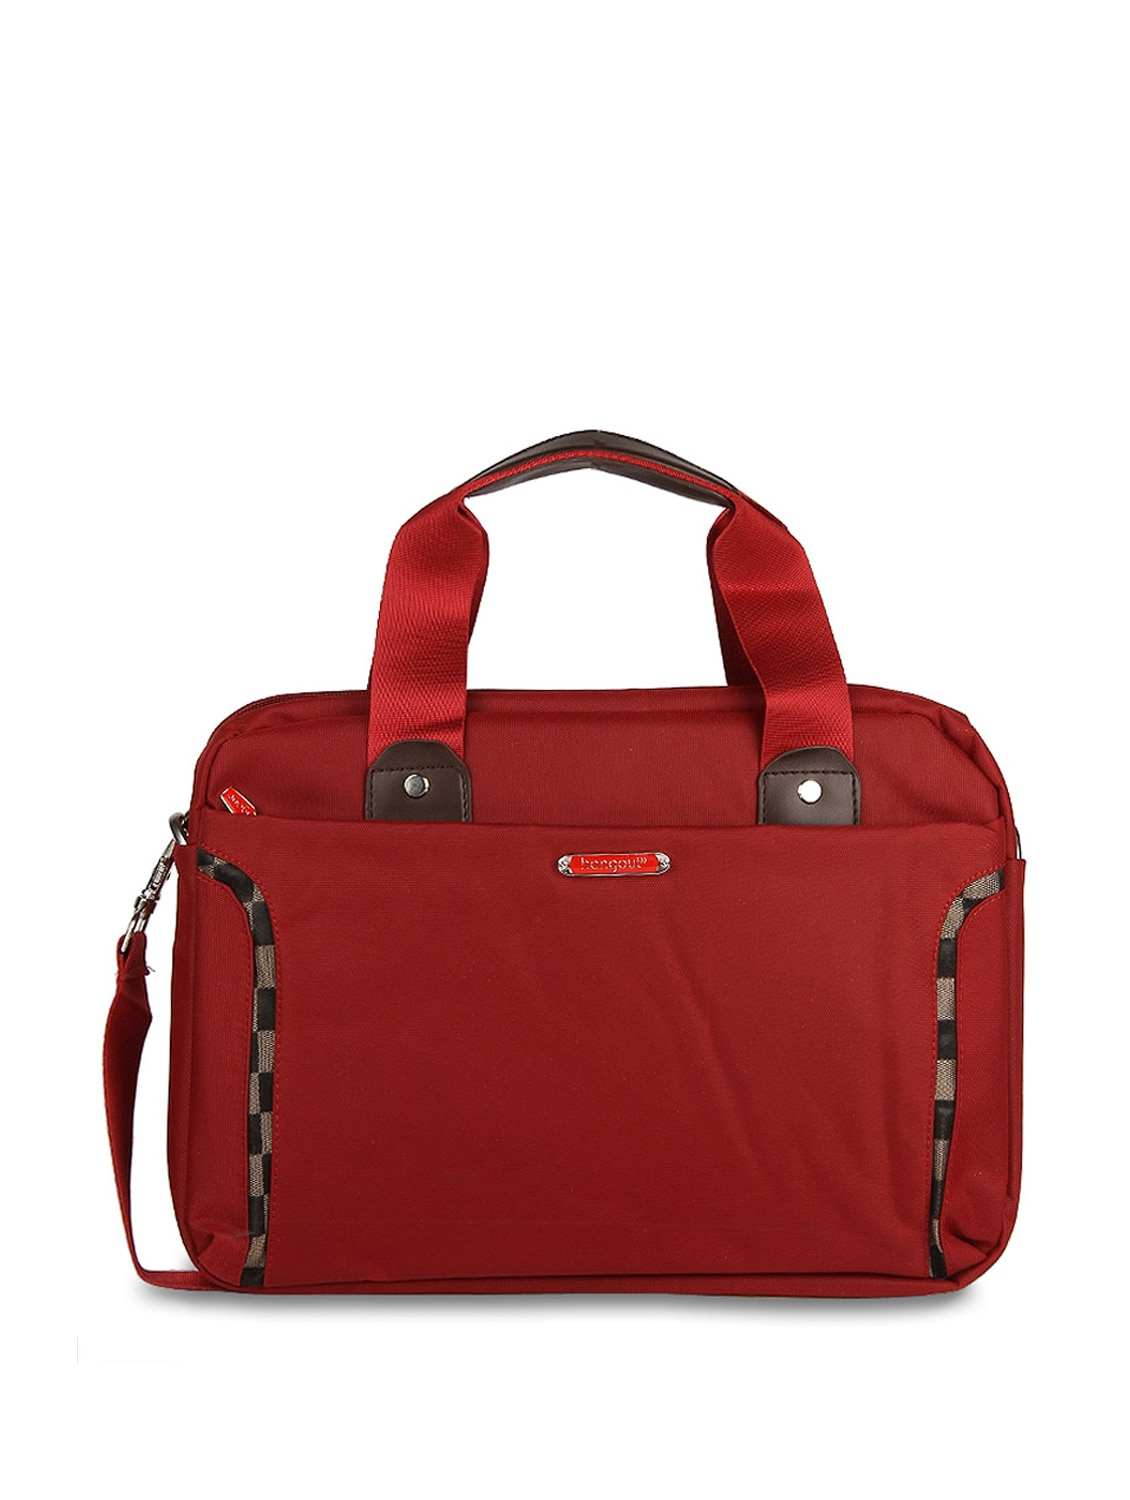 "11"" Red 'Hang Out' Laptop Bag - ALESSIA"